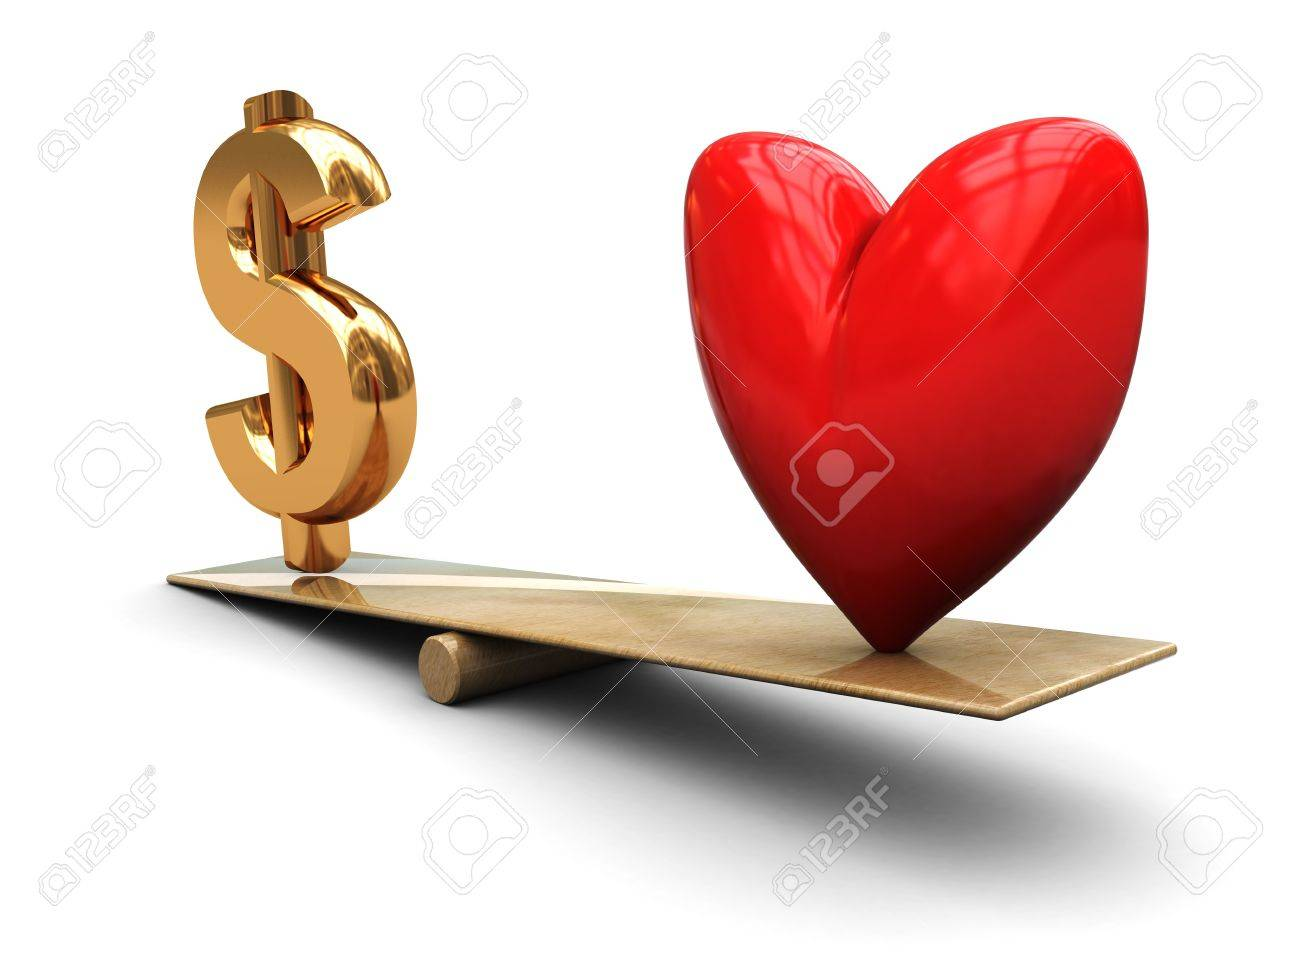 3d illustration of heart and dollar sign on scale Stock Photo - 4268954